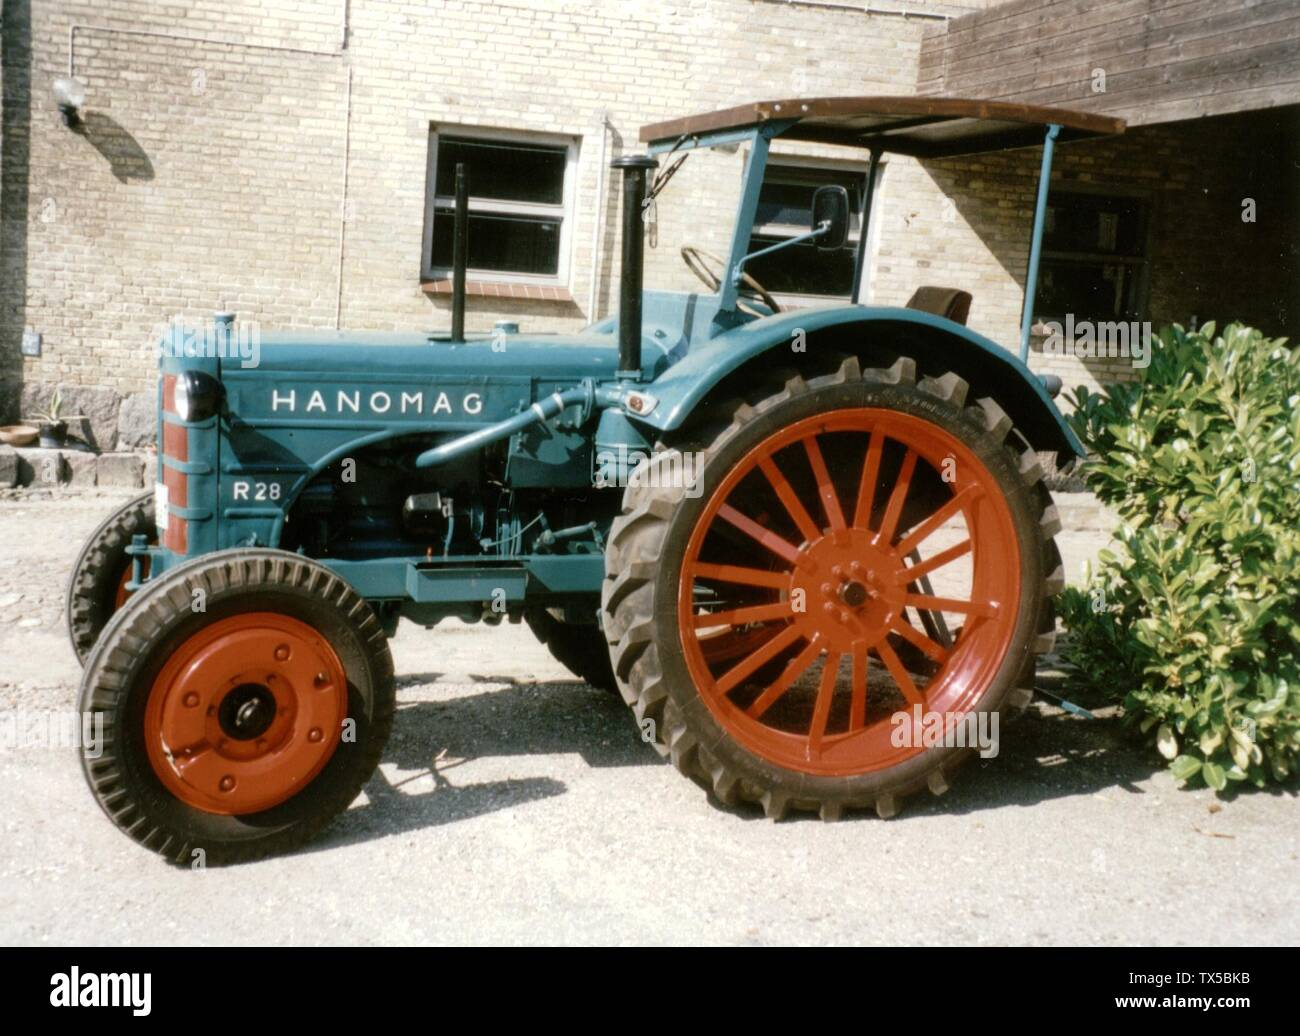 'Deutsch: Hanomag R 28 A; before 20 March 2006 date QS:P,+2006-03-20T00:00:00Z/7,P1326,+2006-03-20T00:00:00Z/11; Own work (PeterSL) English: Transferred from de.wikibooks.org [1]: 2006-03-20 13:38 . . PeterSL . . 2066×1506 (374884 bytes) . .  Public Domain / selbst fotografiert; PeterSL; ' - Stock Image